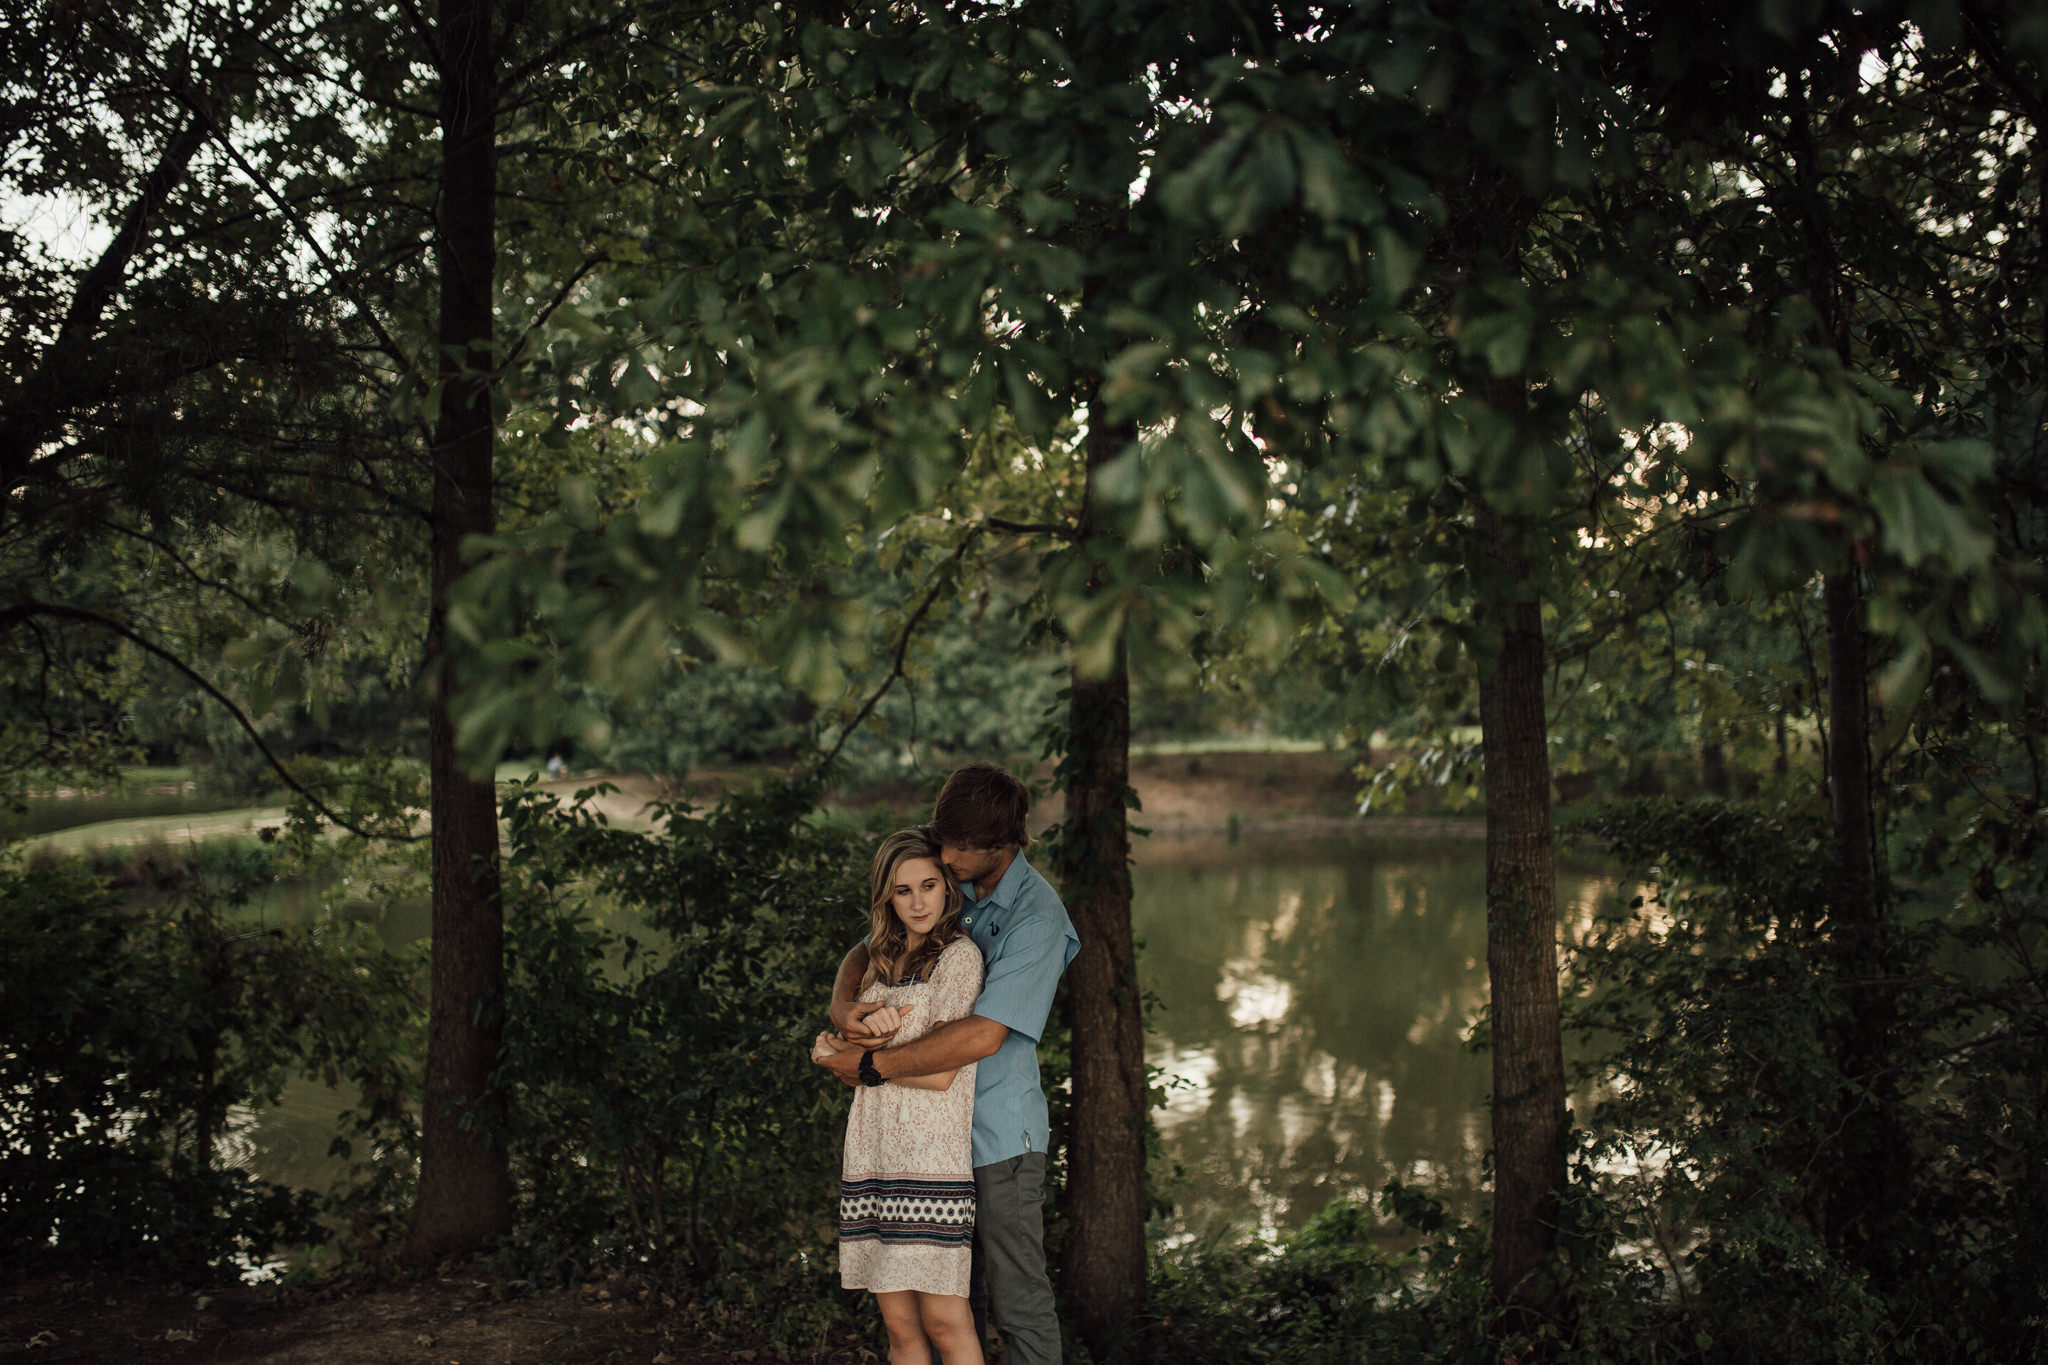 cassie-cook-photography-shelby-farms-engagment-pictures-memphis-wedding-photographer-540.jpg